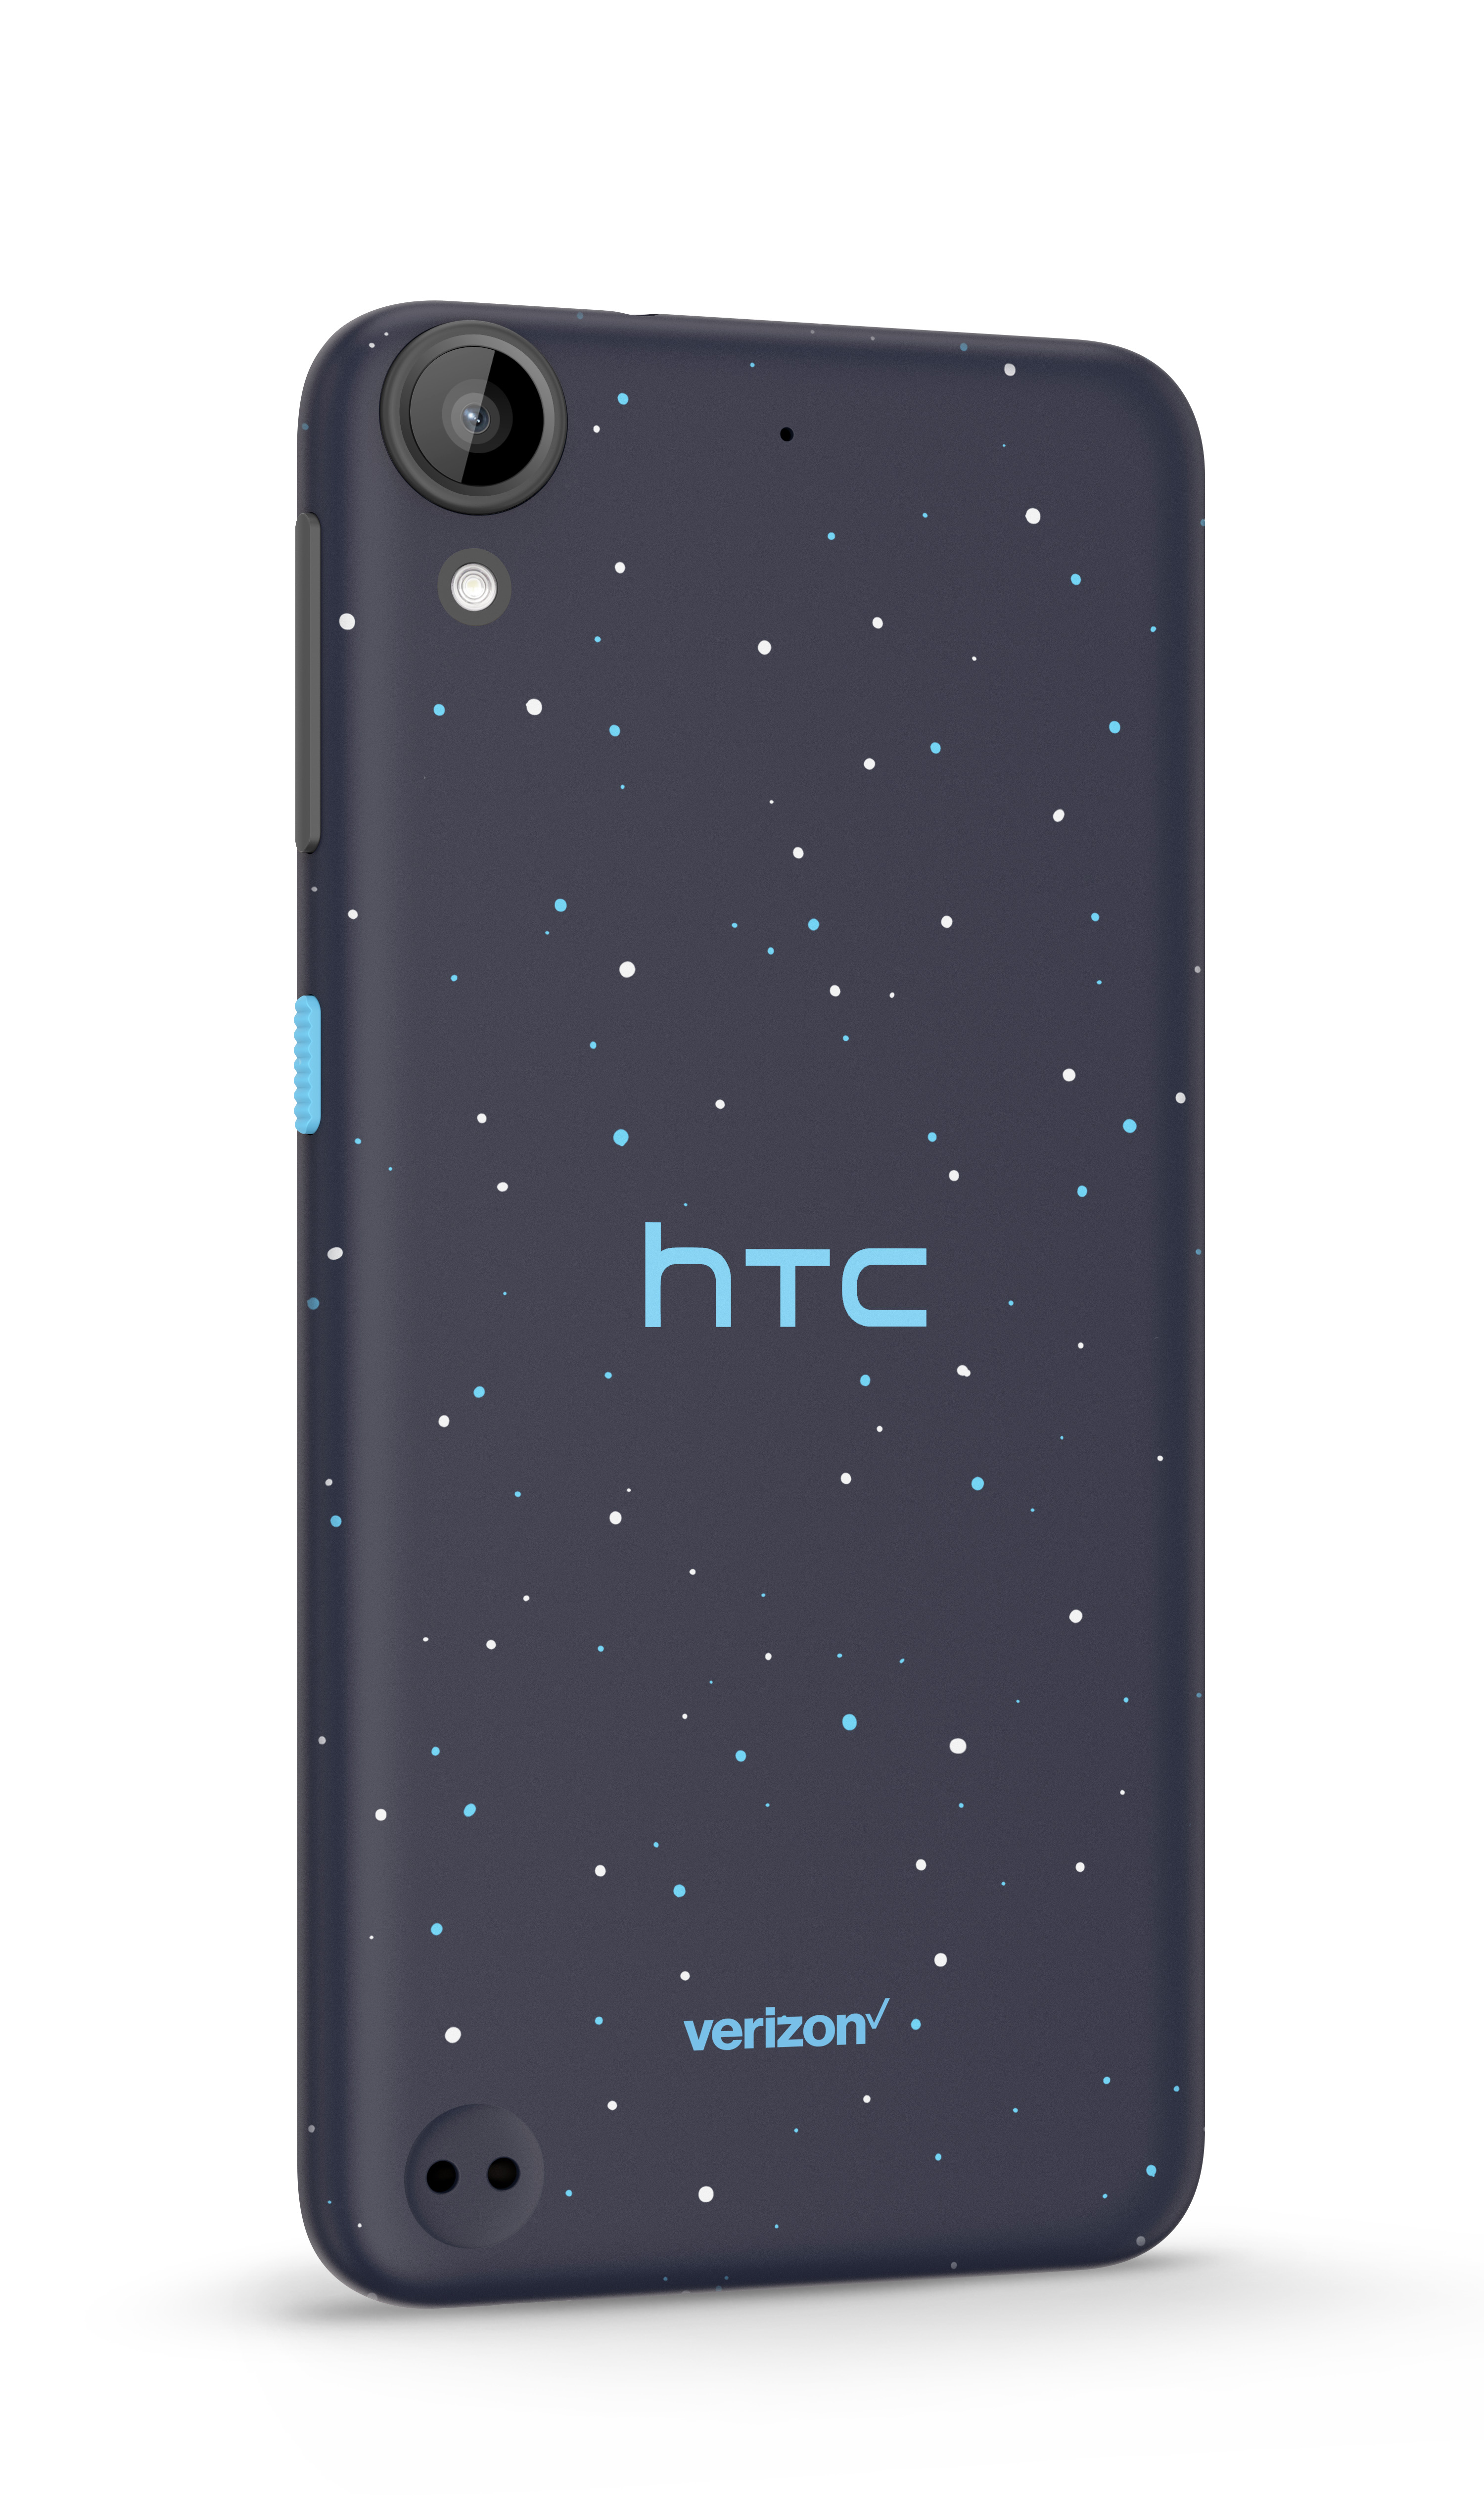 Order the HTC Desire® 530 from Verizon today